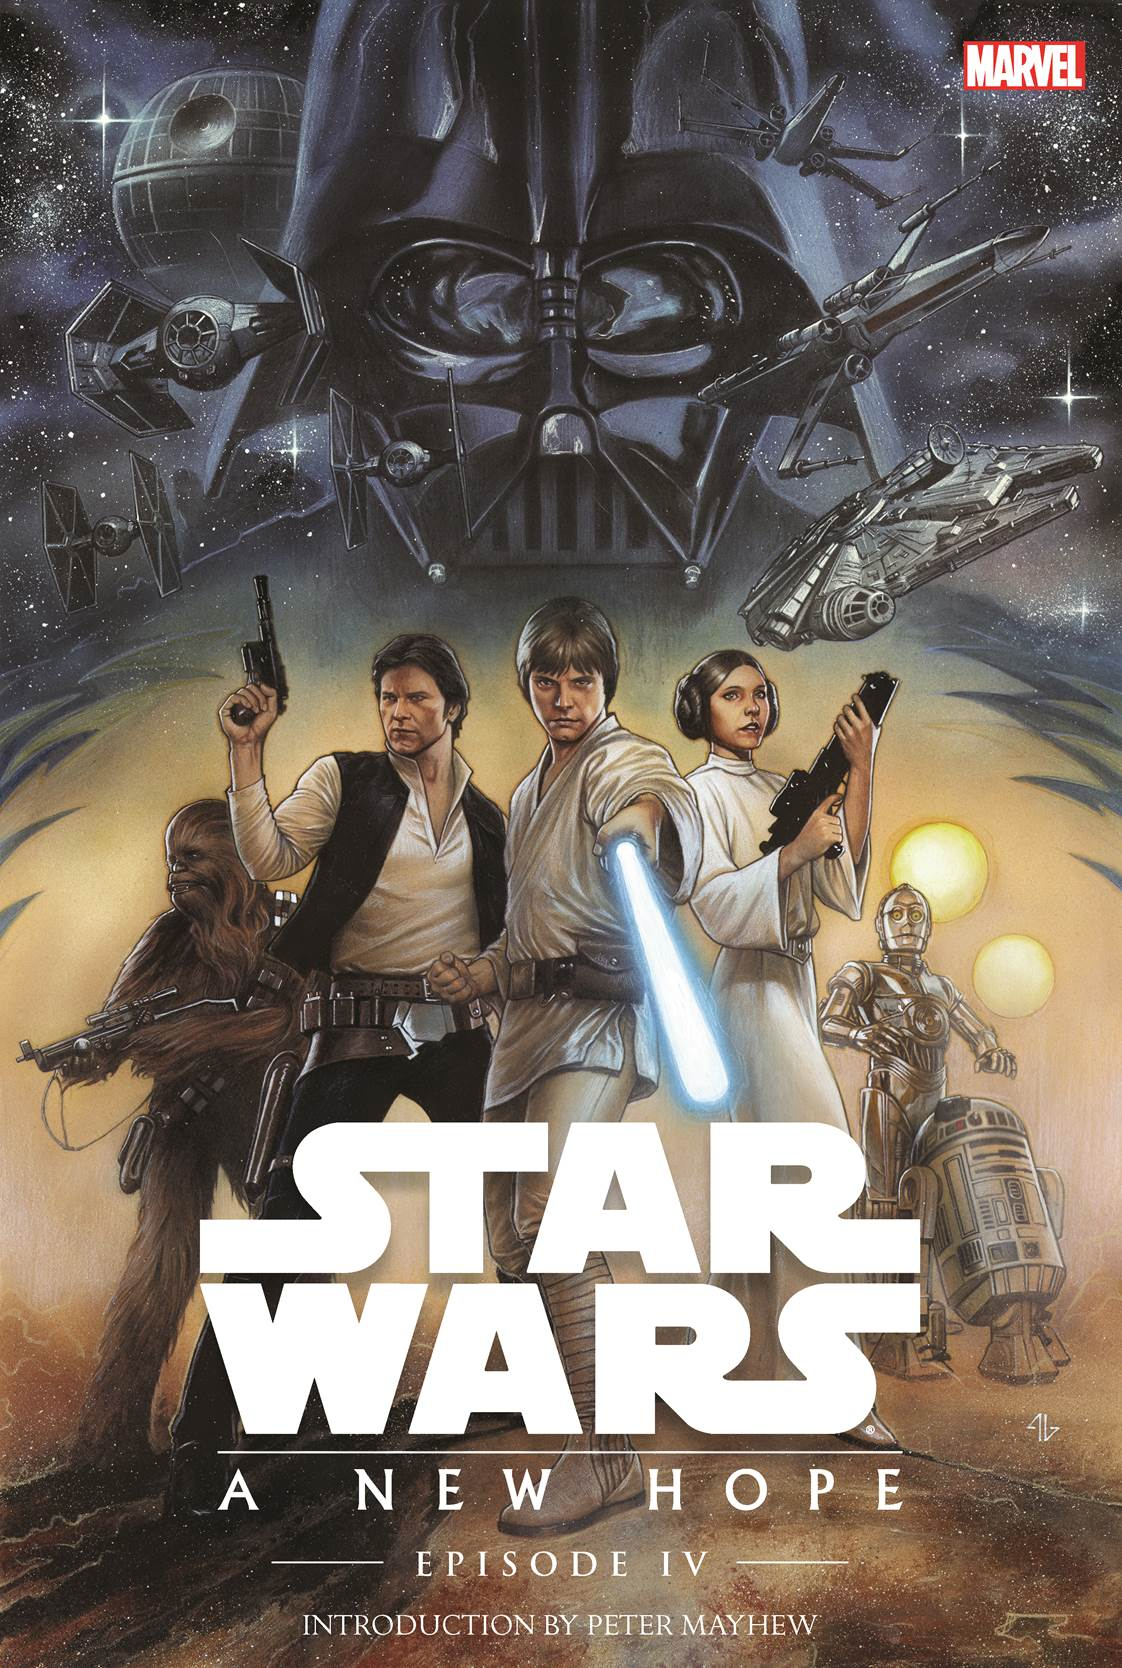 STAR WARS GN HC EPISODE IV NEW HOPE